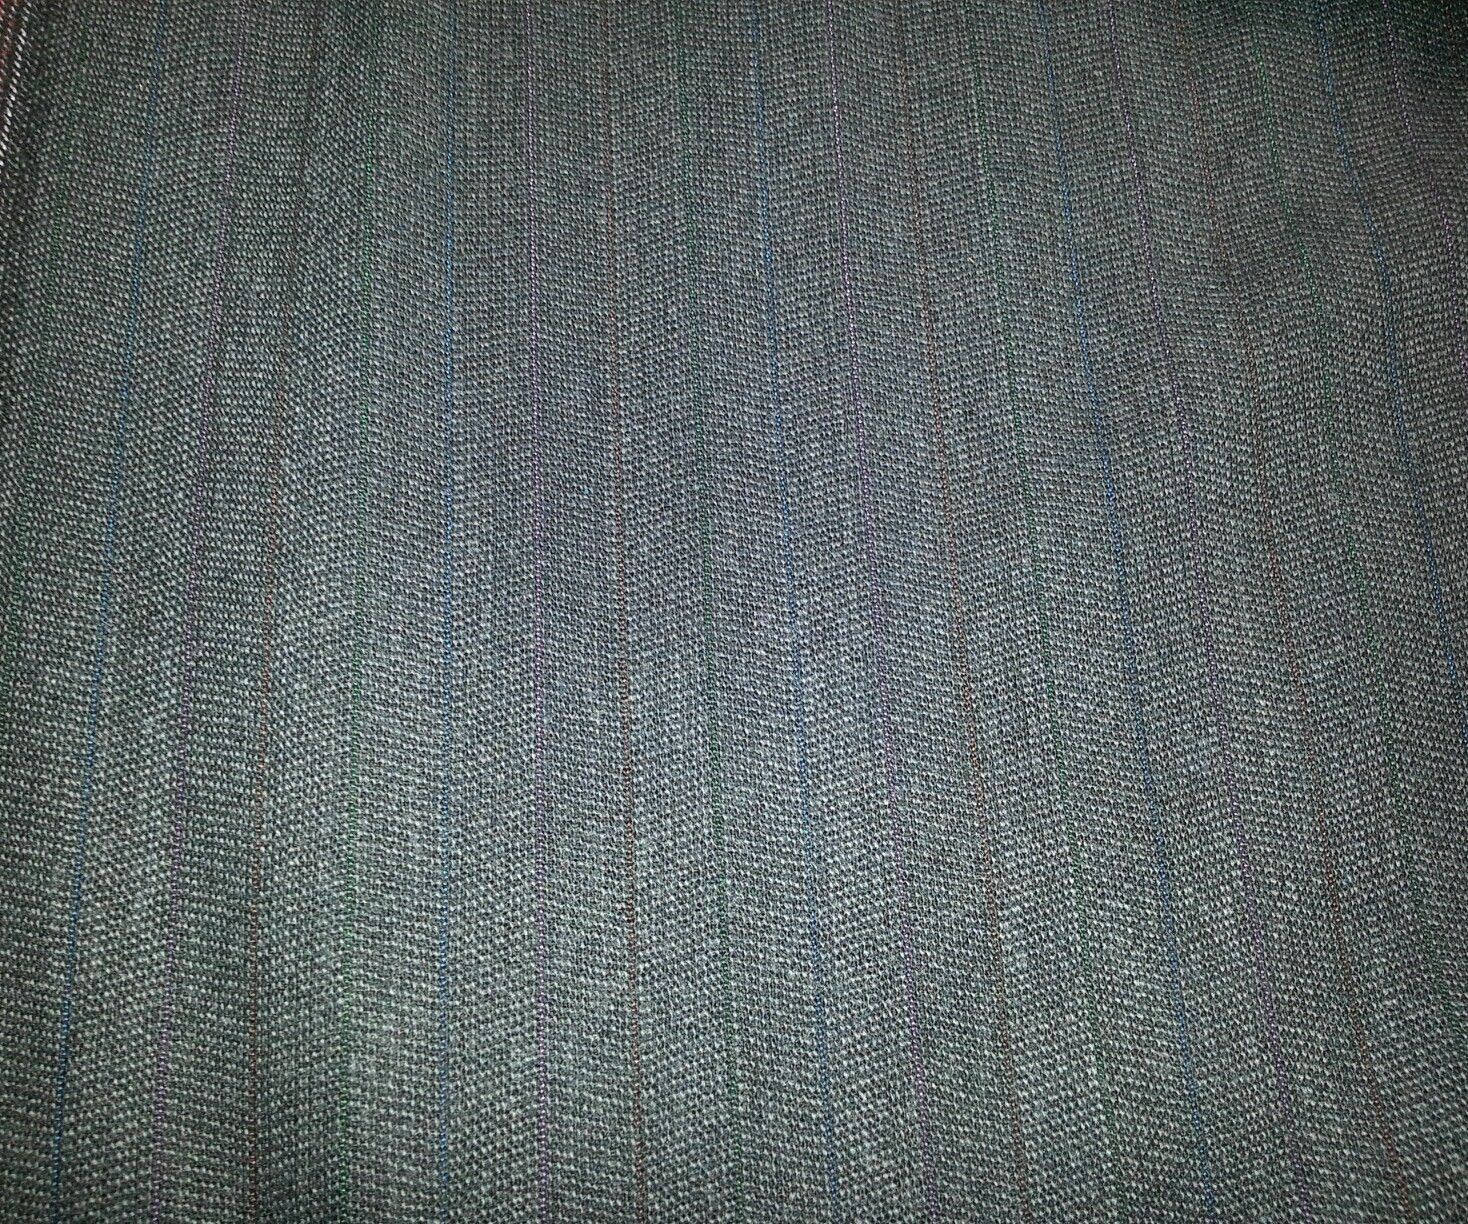 10 YARD Grey  SUPER  WOOL DESIGNER SUIT FABRIC MSRP $950 FREE SHIPPING!